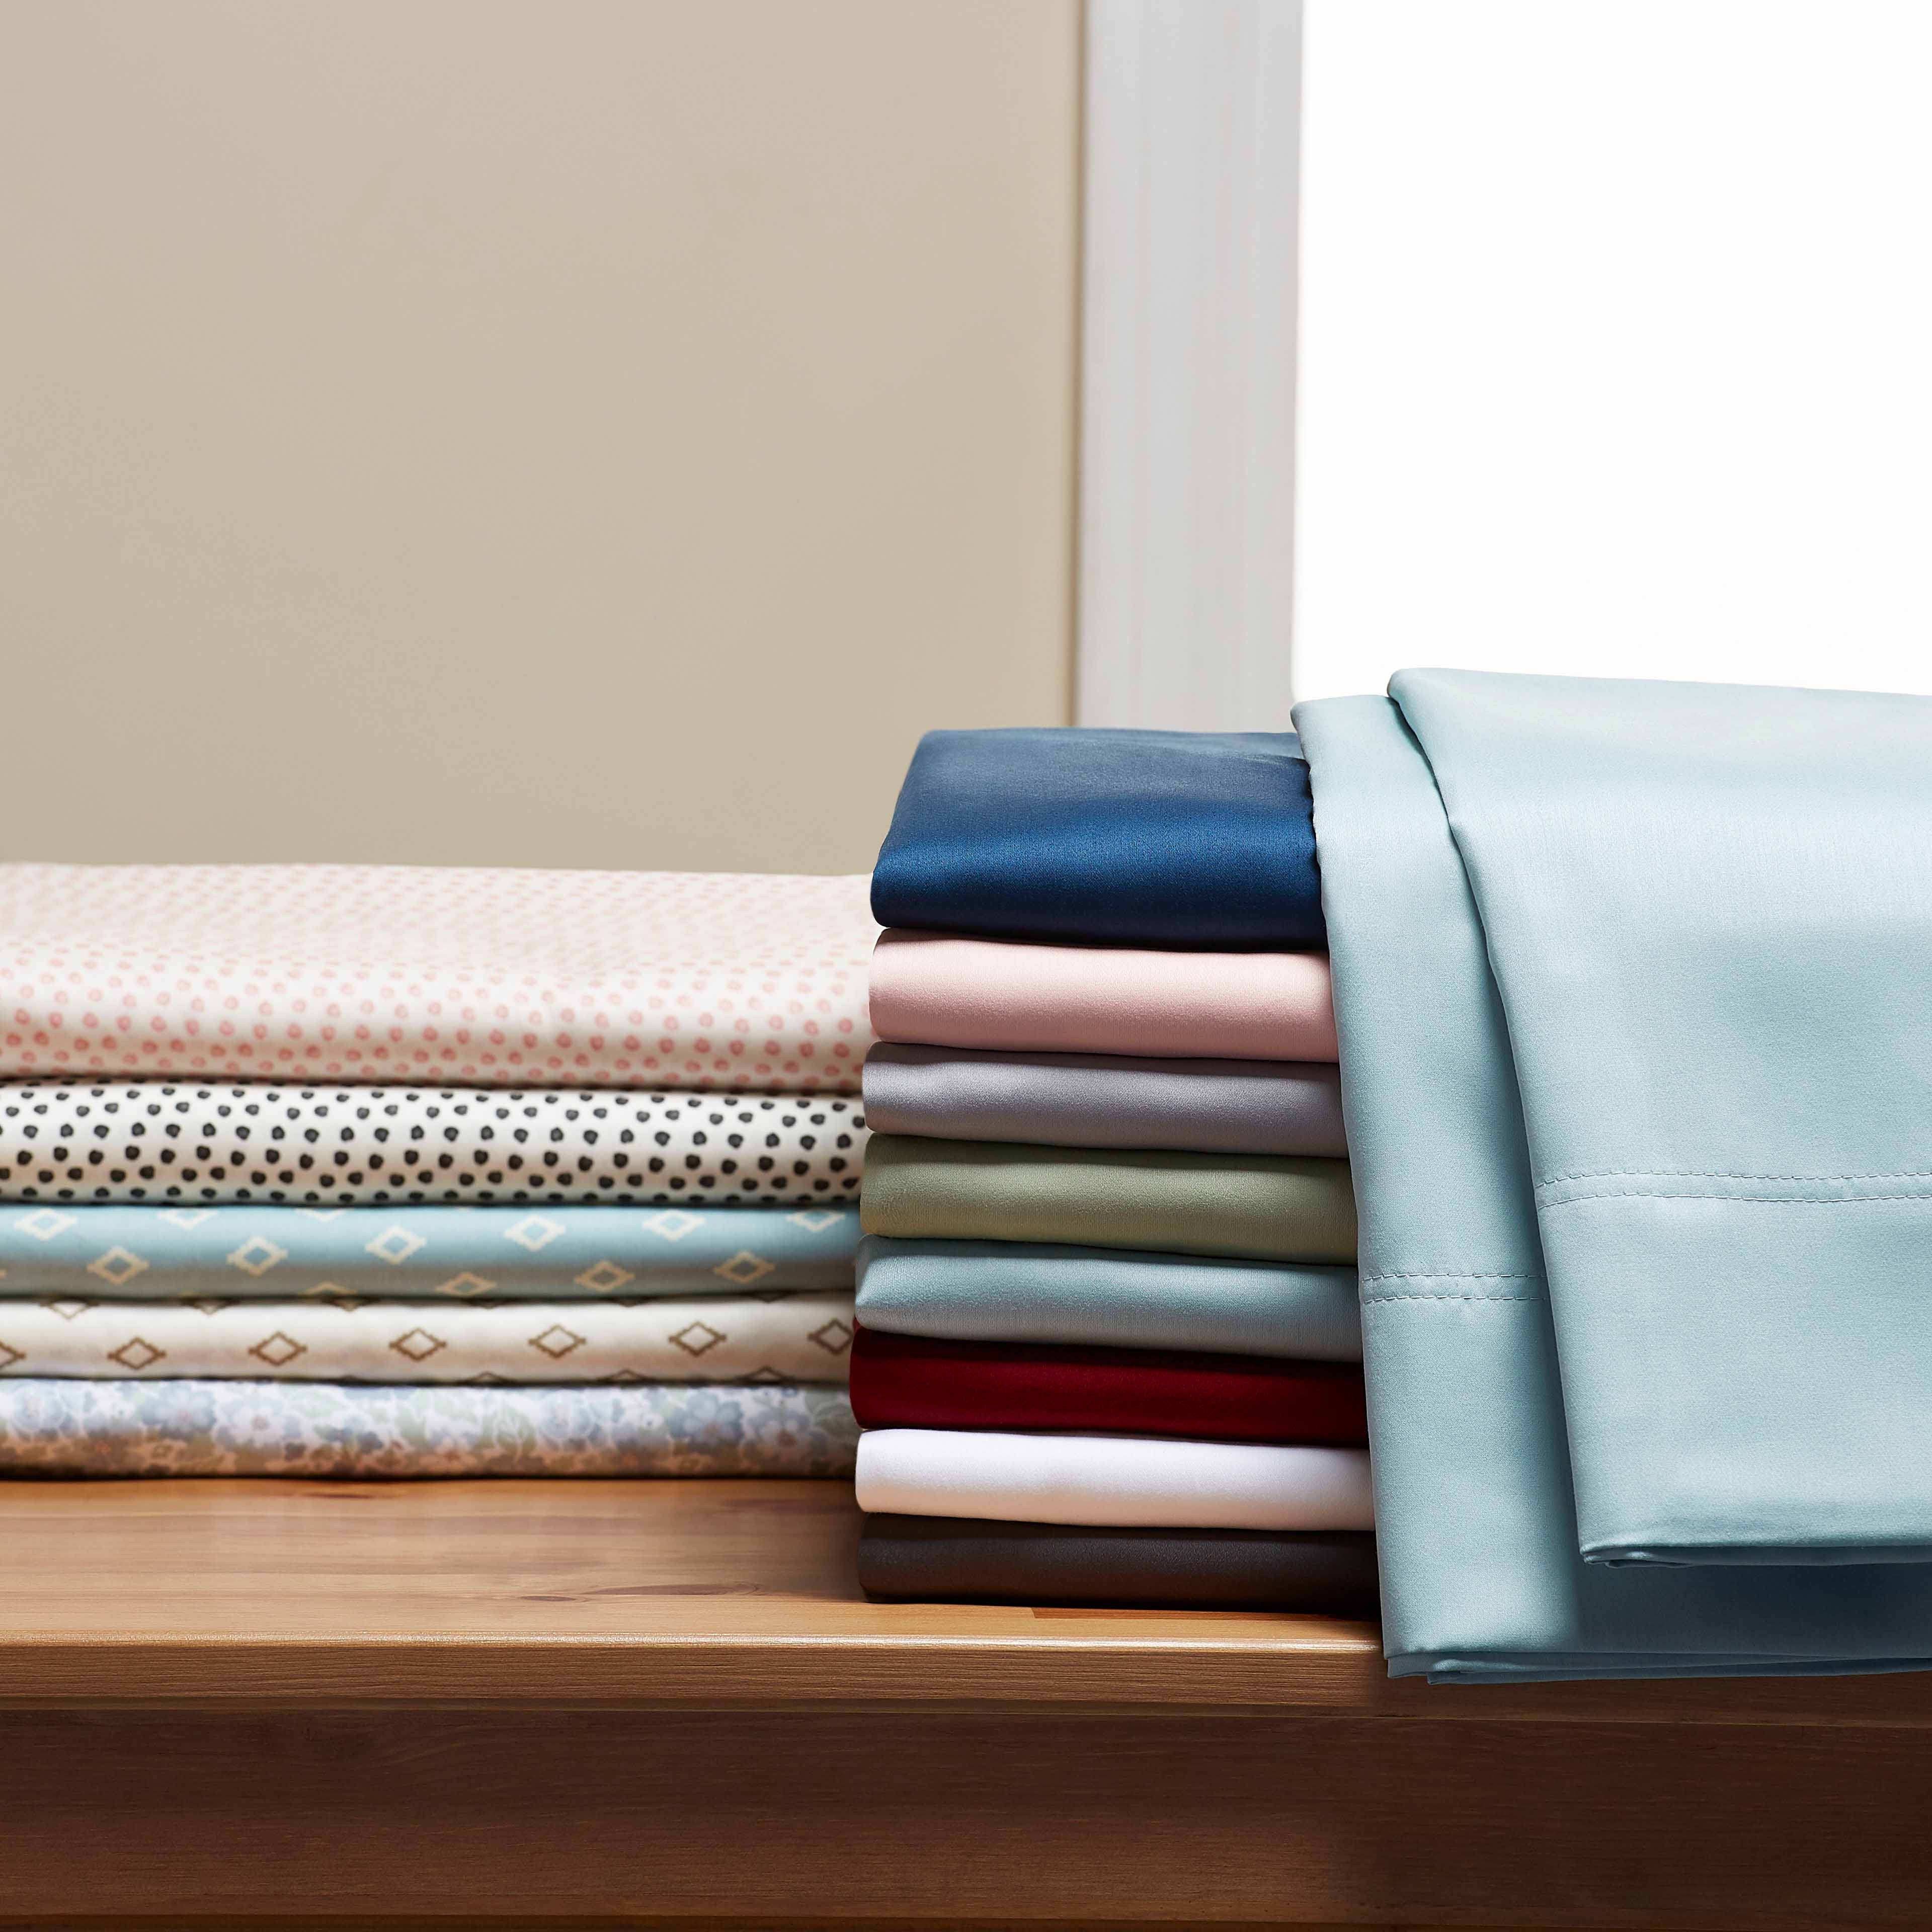 Better Home and Gardens 300-Thread-Count Wrinkle Resistant Sheet Set